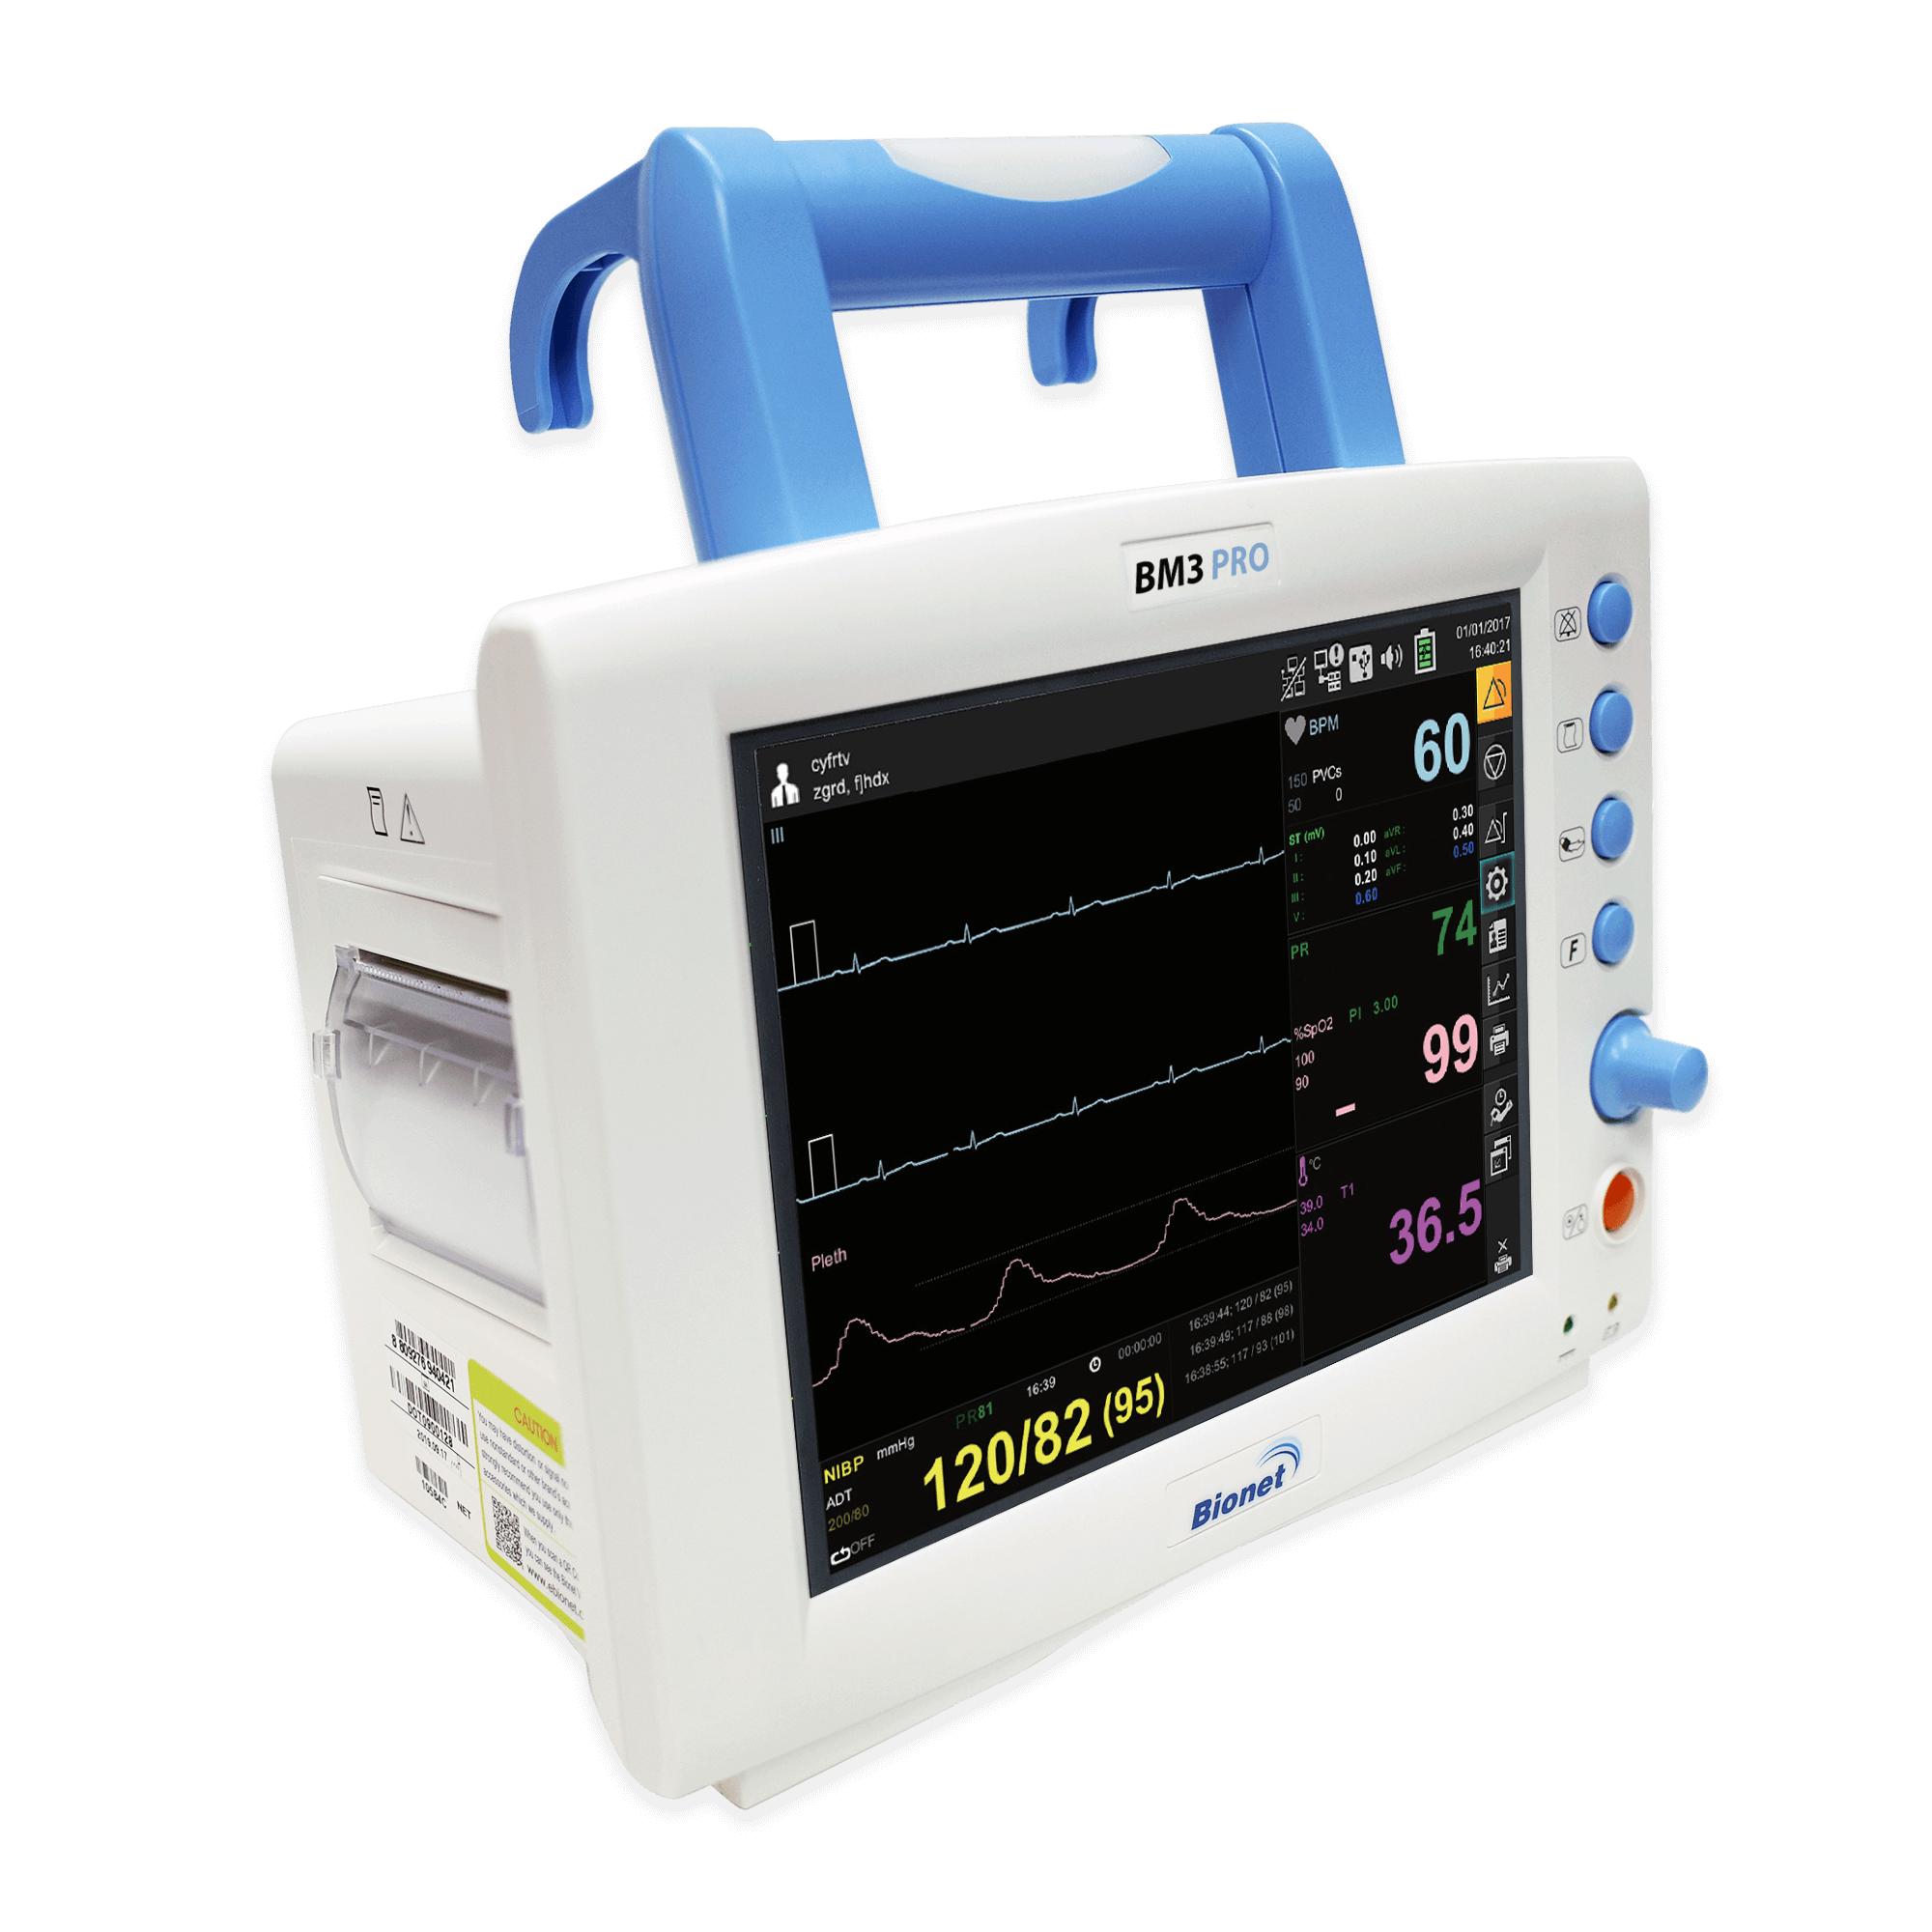 Bionet BM3 Pro Multi-Parameter Patient Monitor